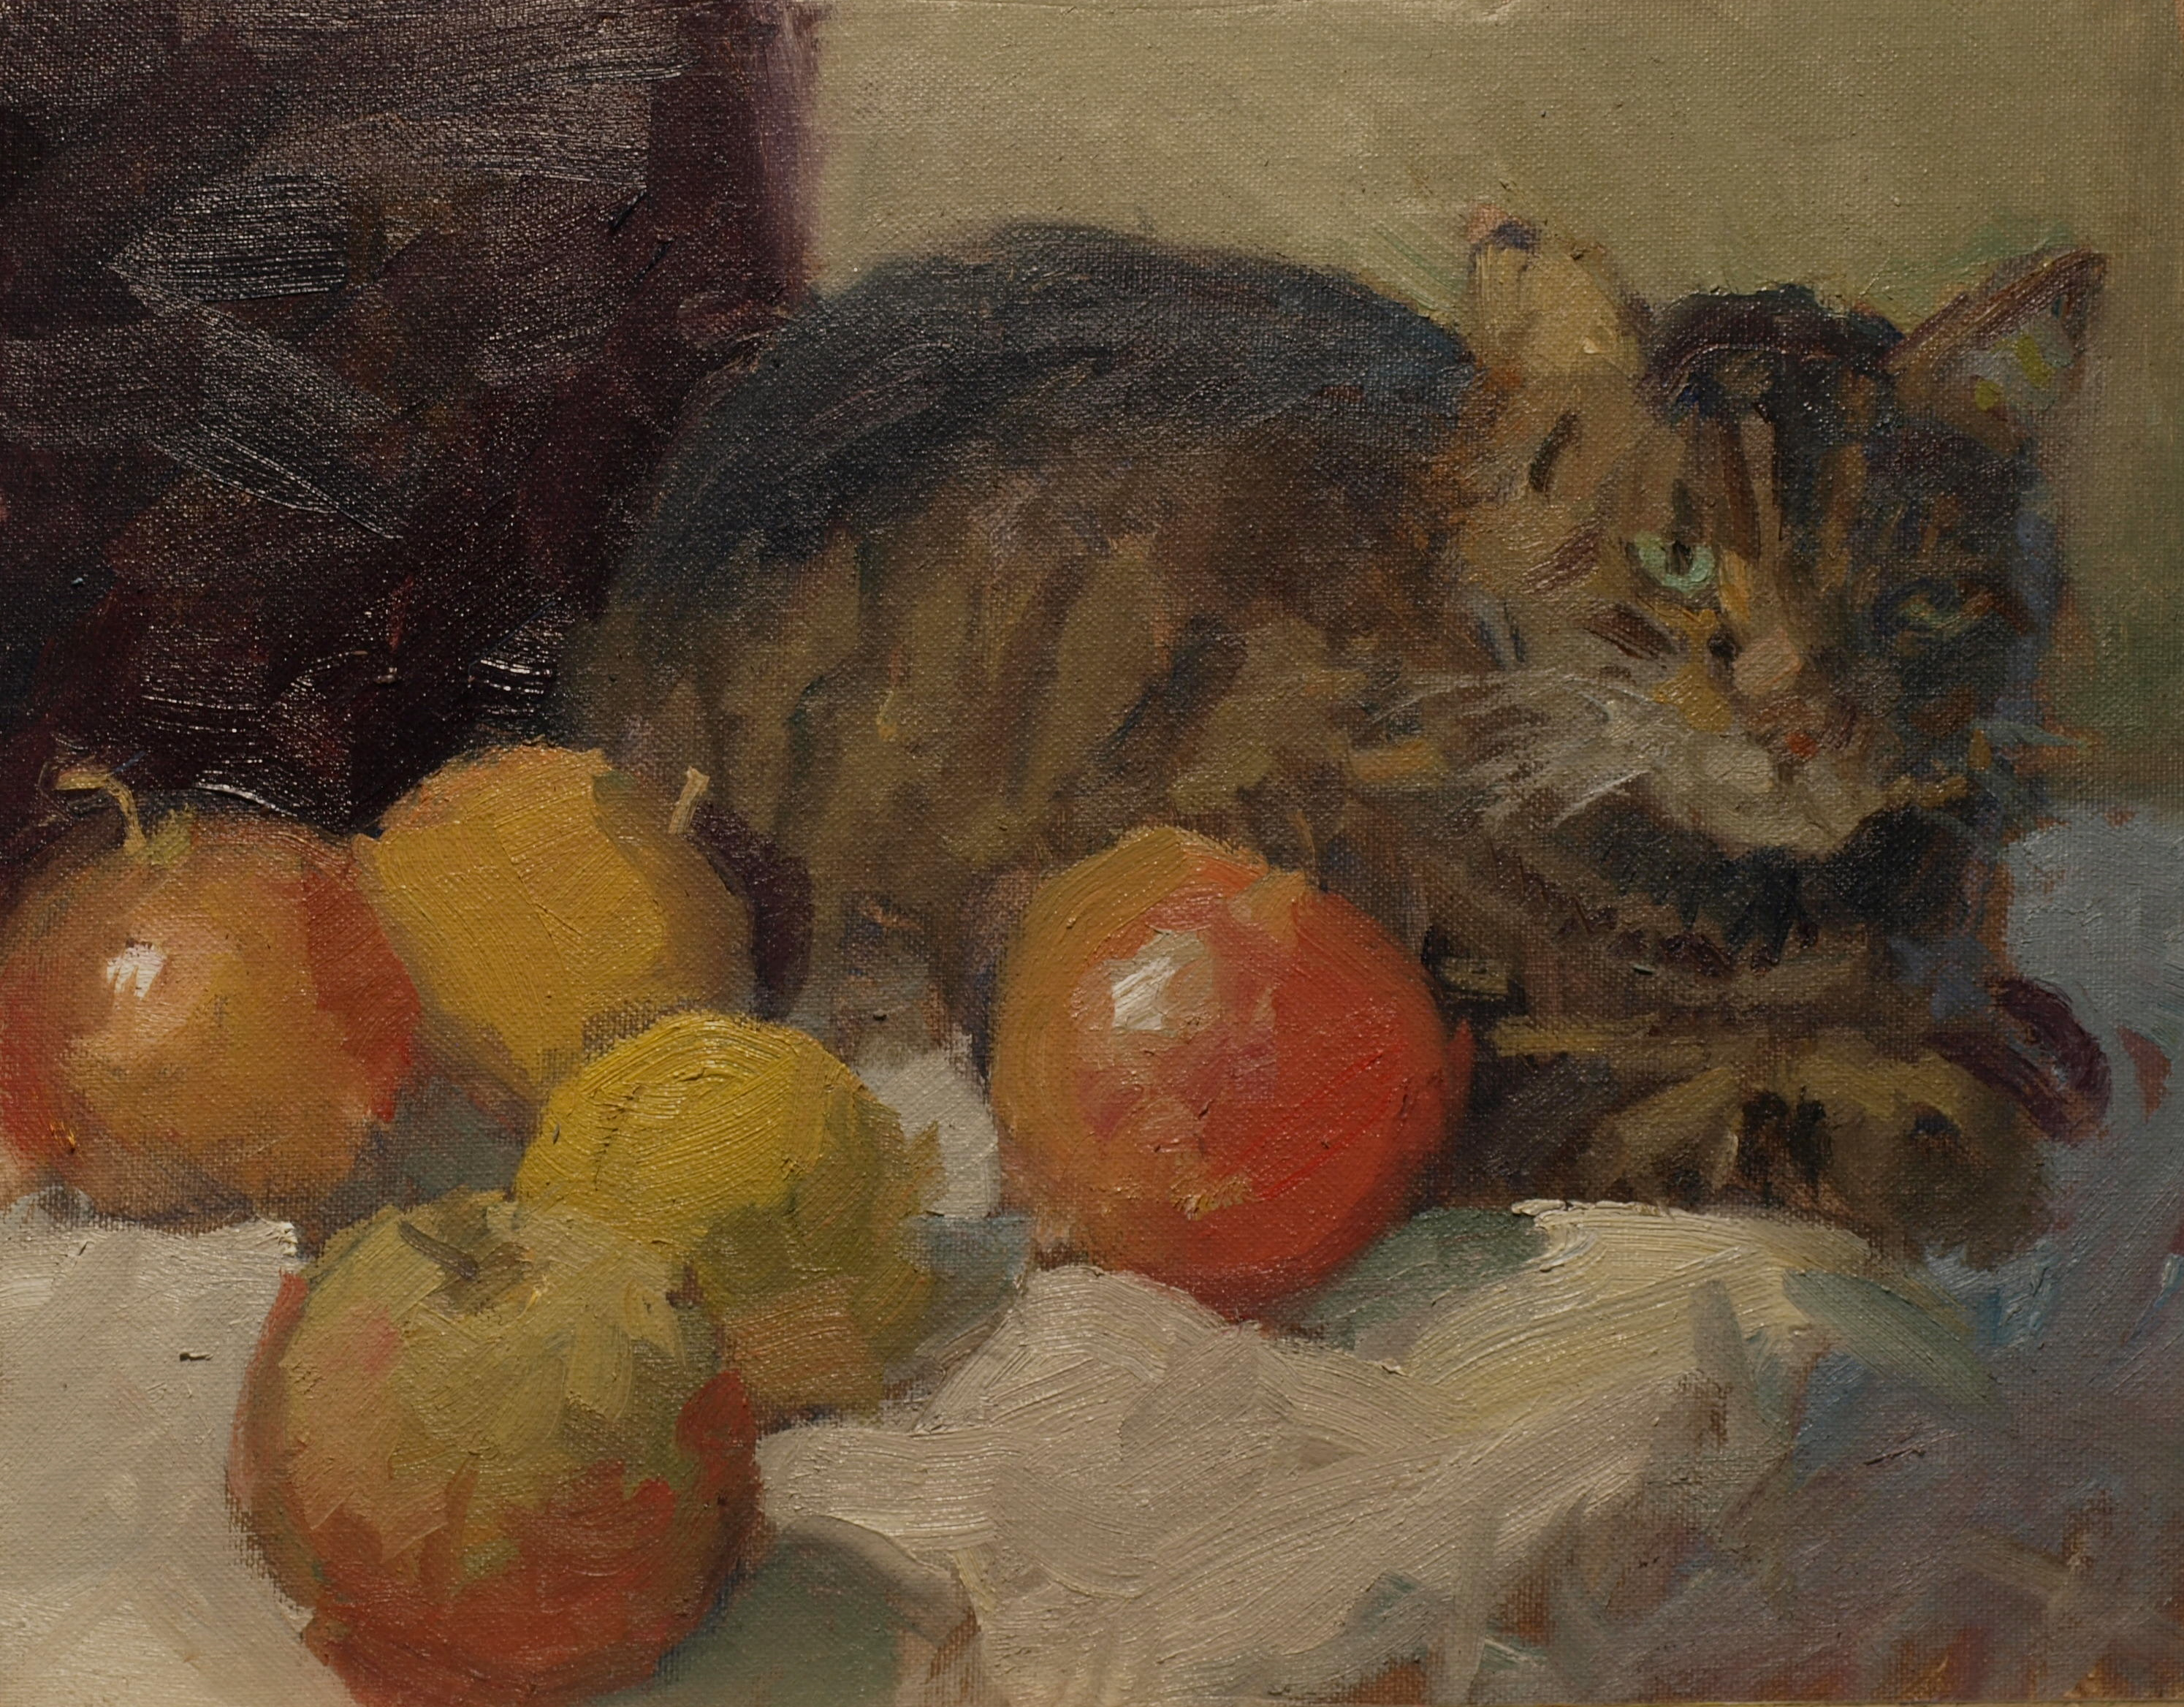 Cat with Apples, Oil on Panel, 11 x 14 Inches, by Susan Grisell, $275